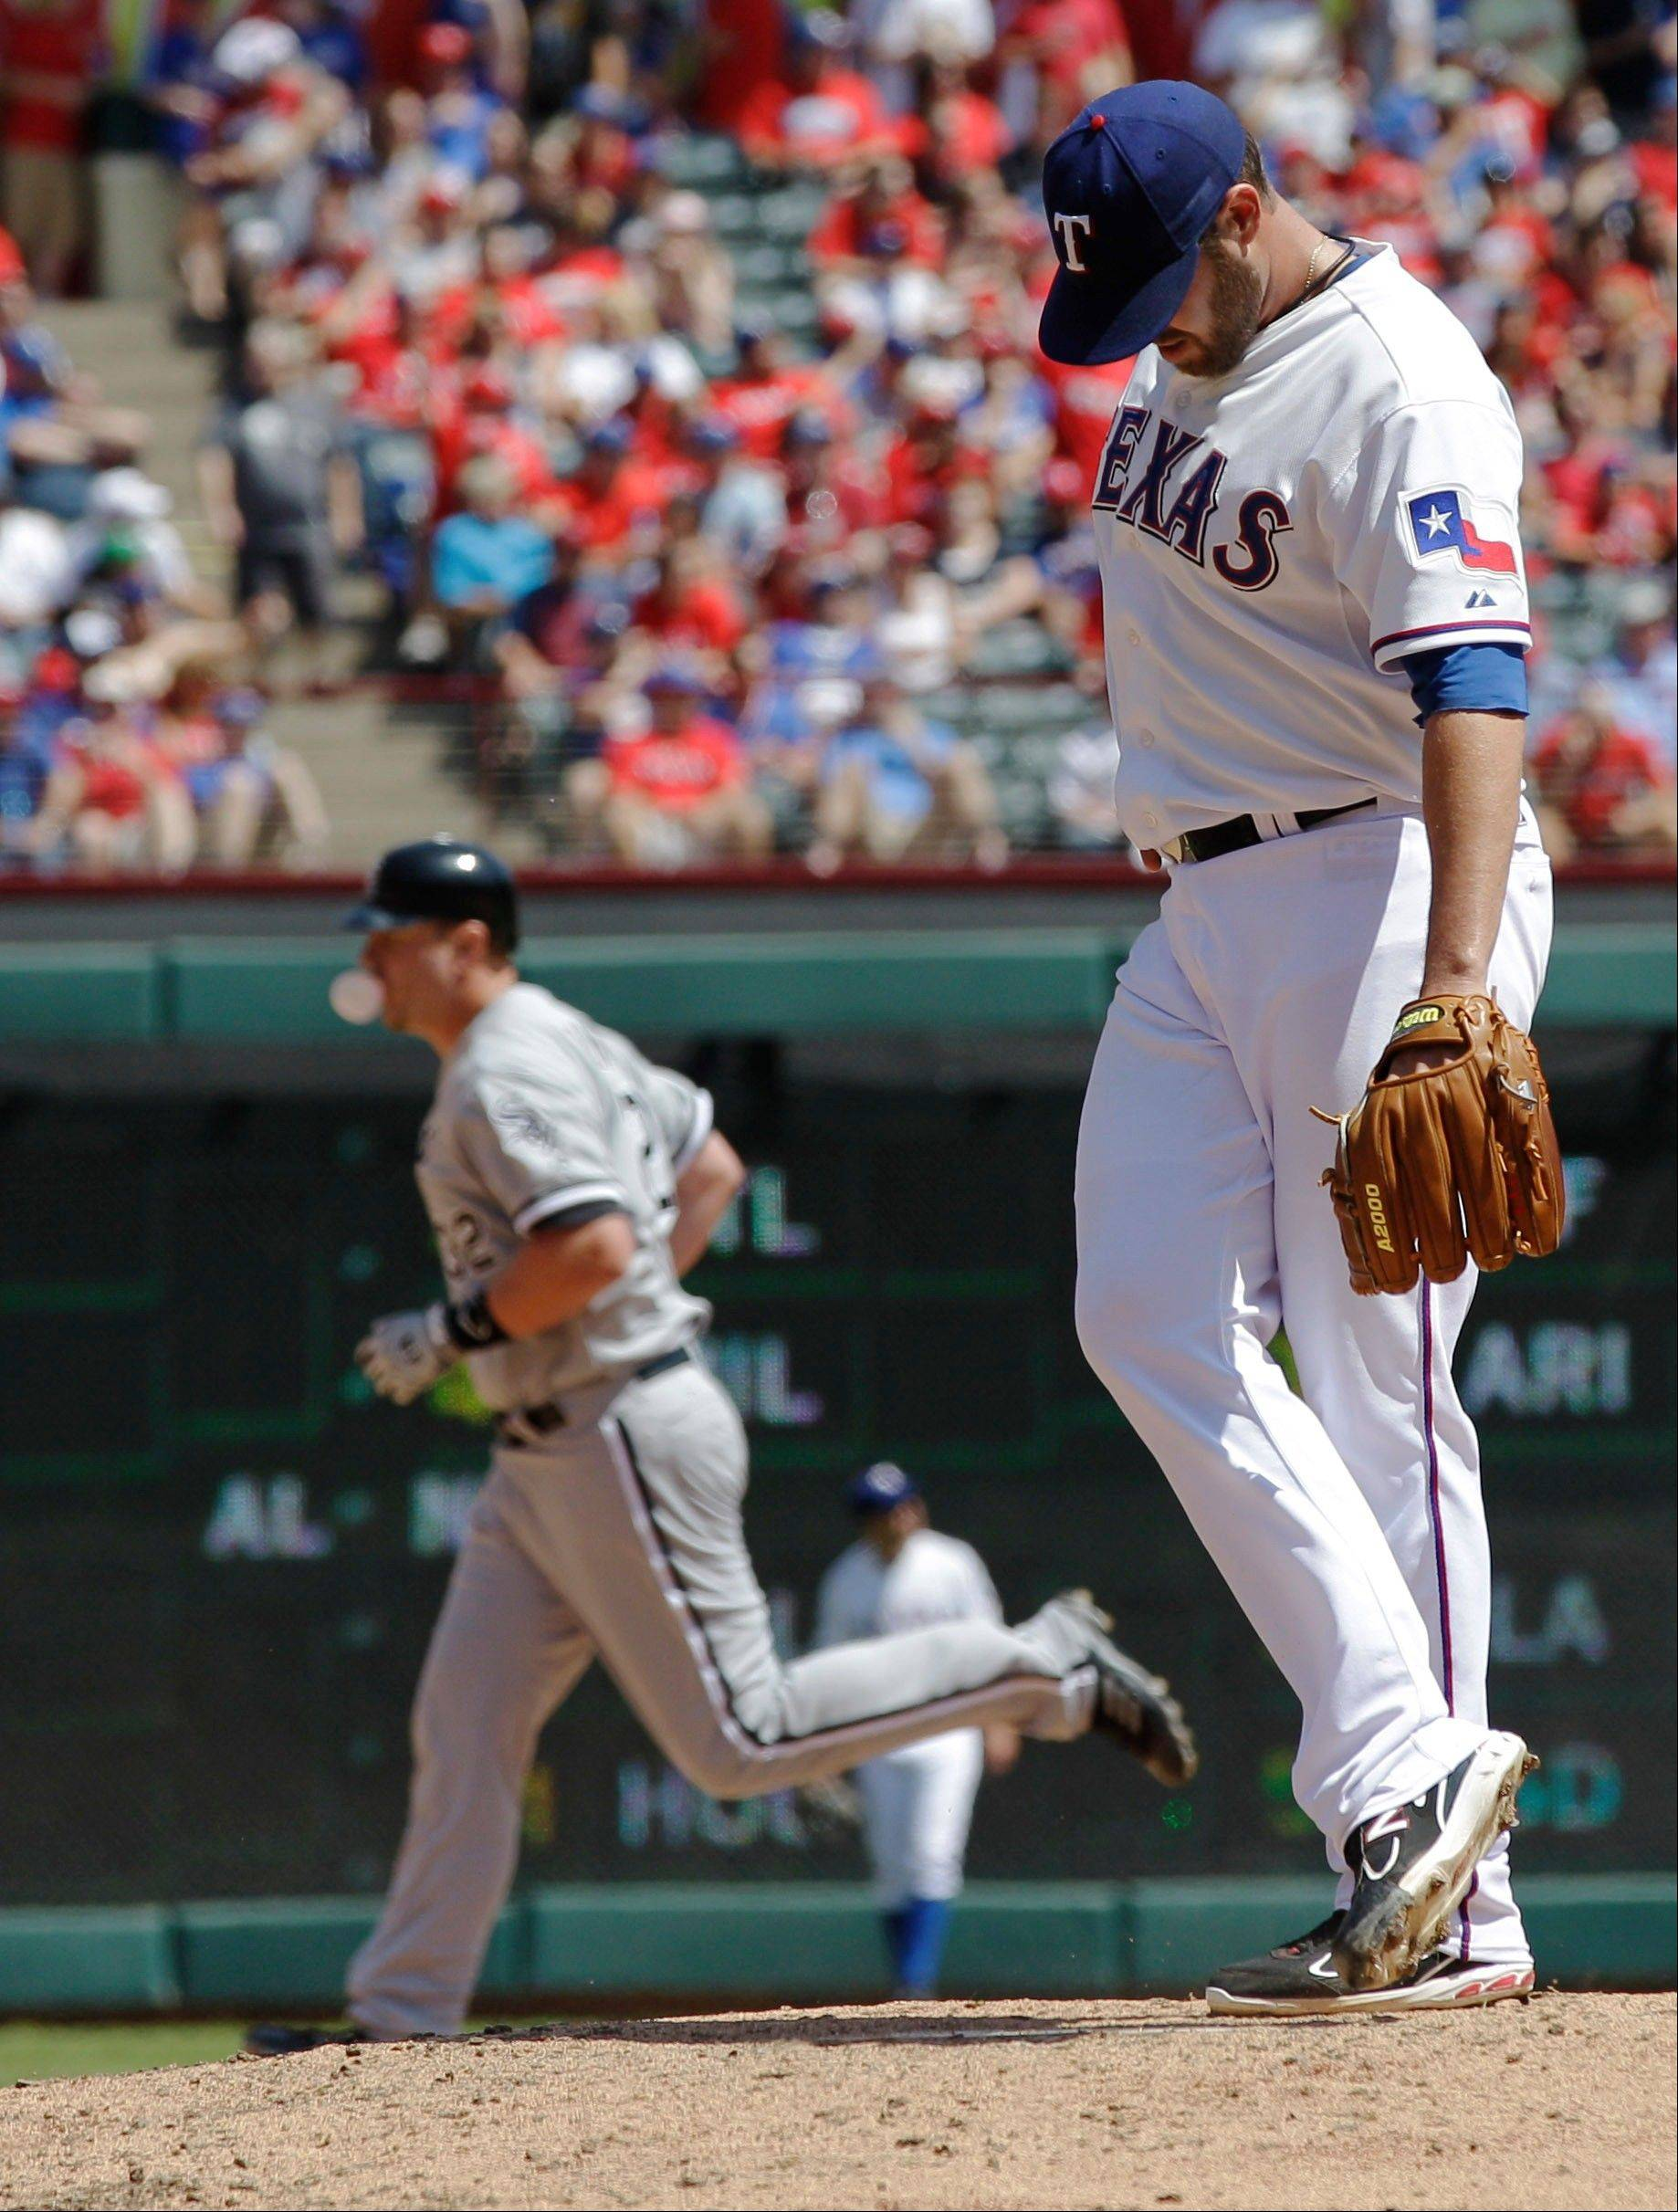 Texas Rangers starting pitcher Colby Lewis clears the mound as Chicago White Sox's Adam Dunn rounds the bases after hitting a solo home run during the sixth inning of a baseball game, Friday, April 6, 2012, in Arlington, Texas.